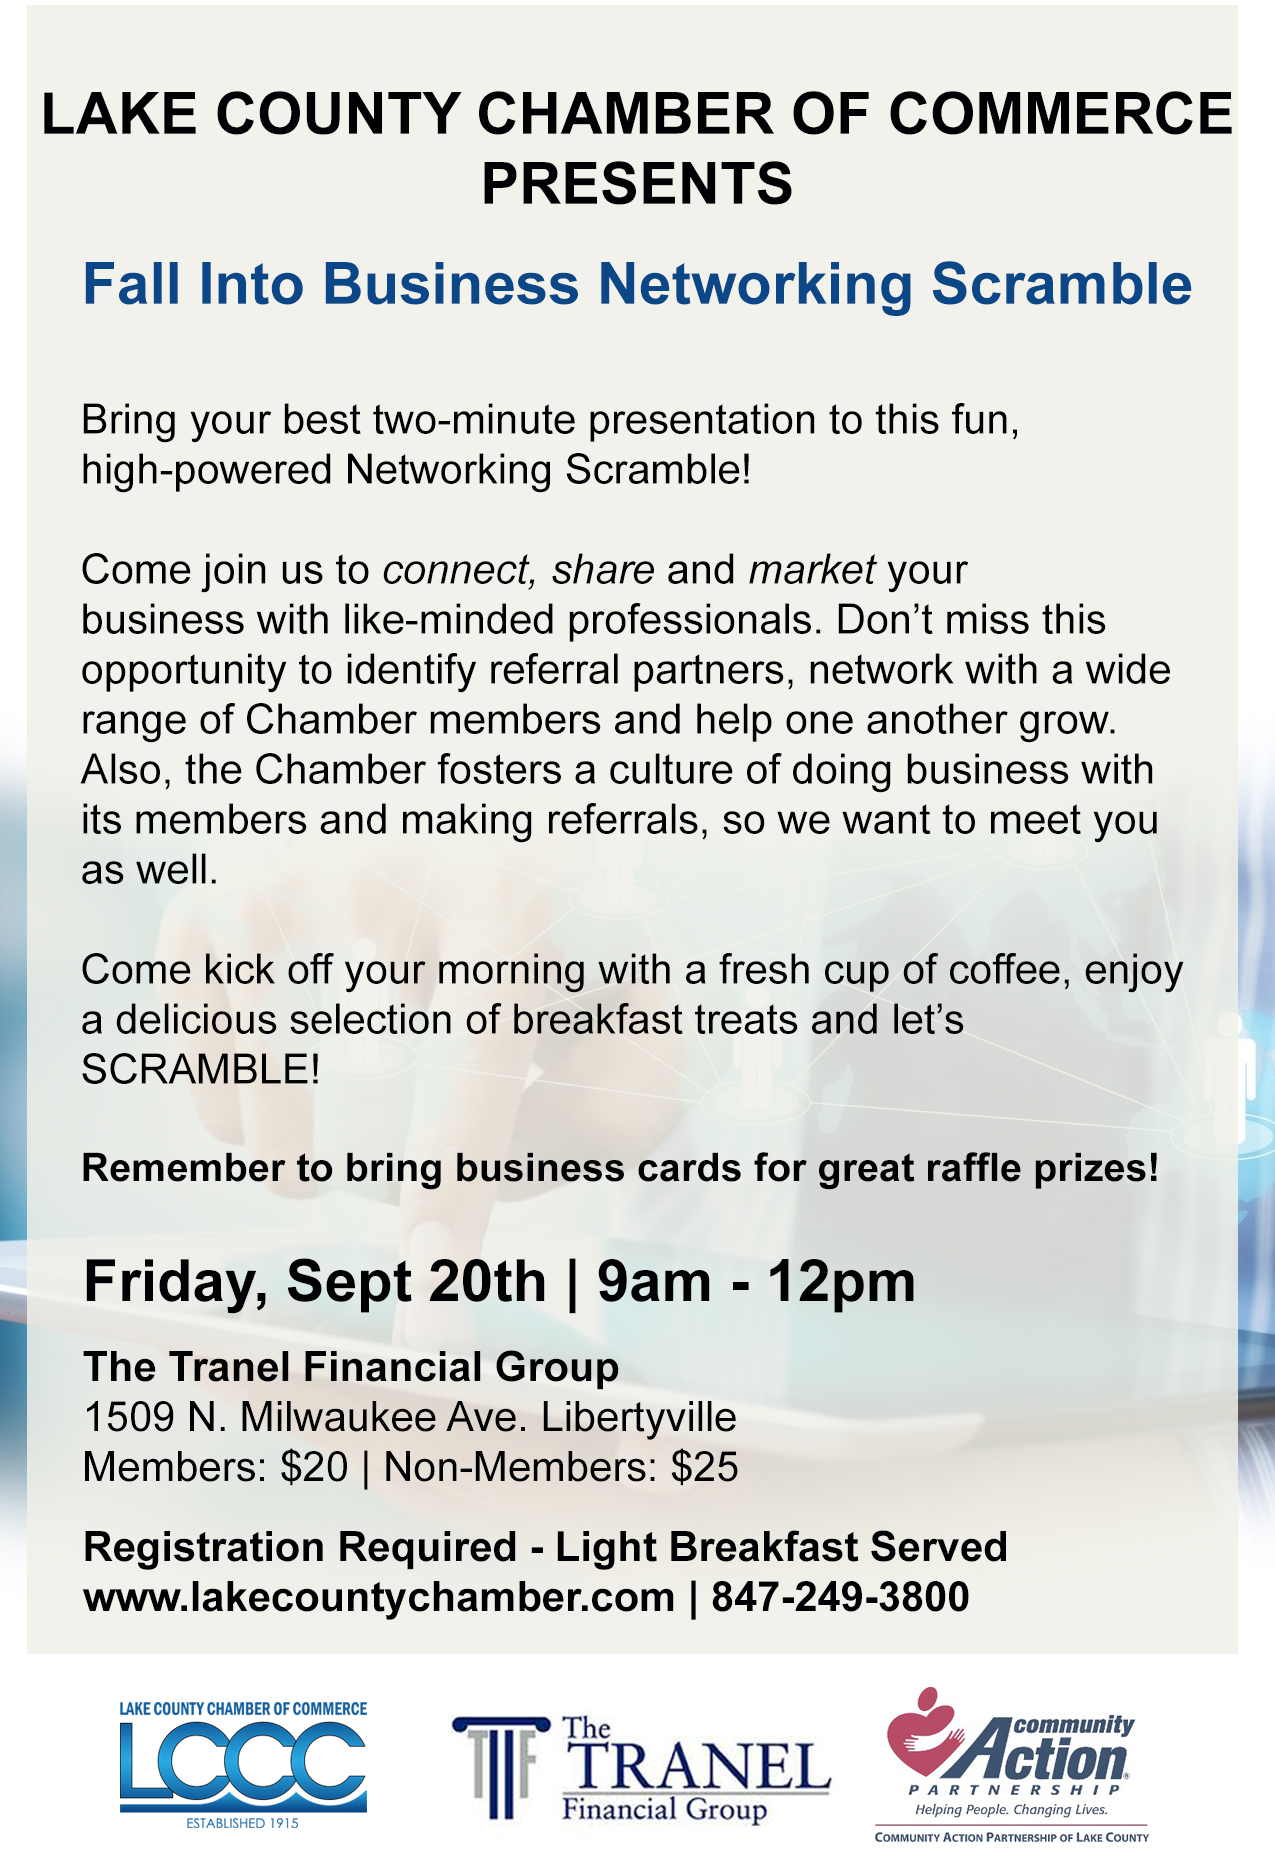 Home - Lake County Chamber of Commerce - IL, IL